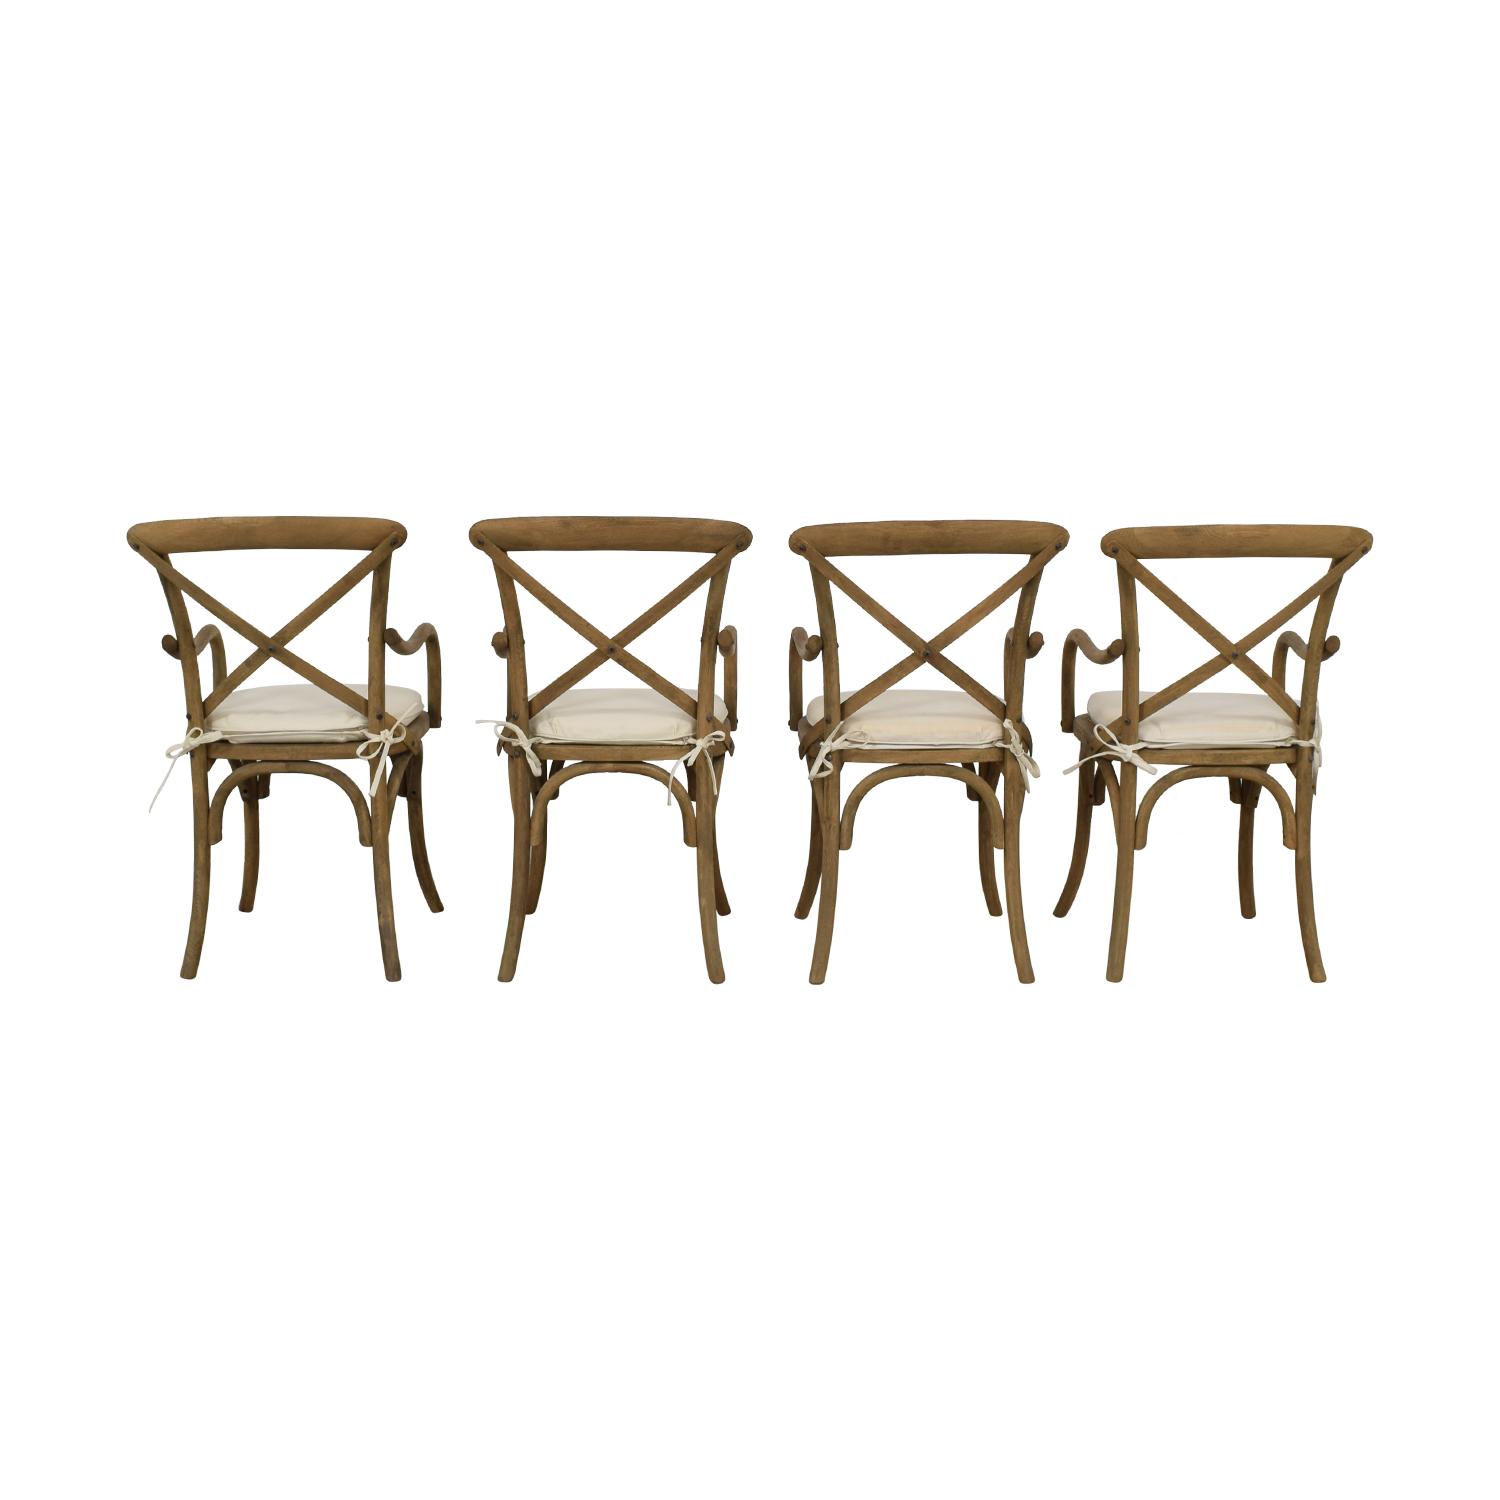 Restoration Hardware Restoration Hardware Madeleine Armchairs Rustic Natural with White Cushions